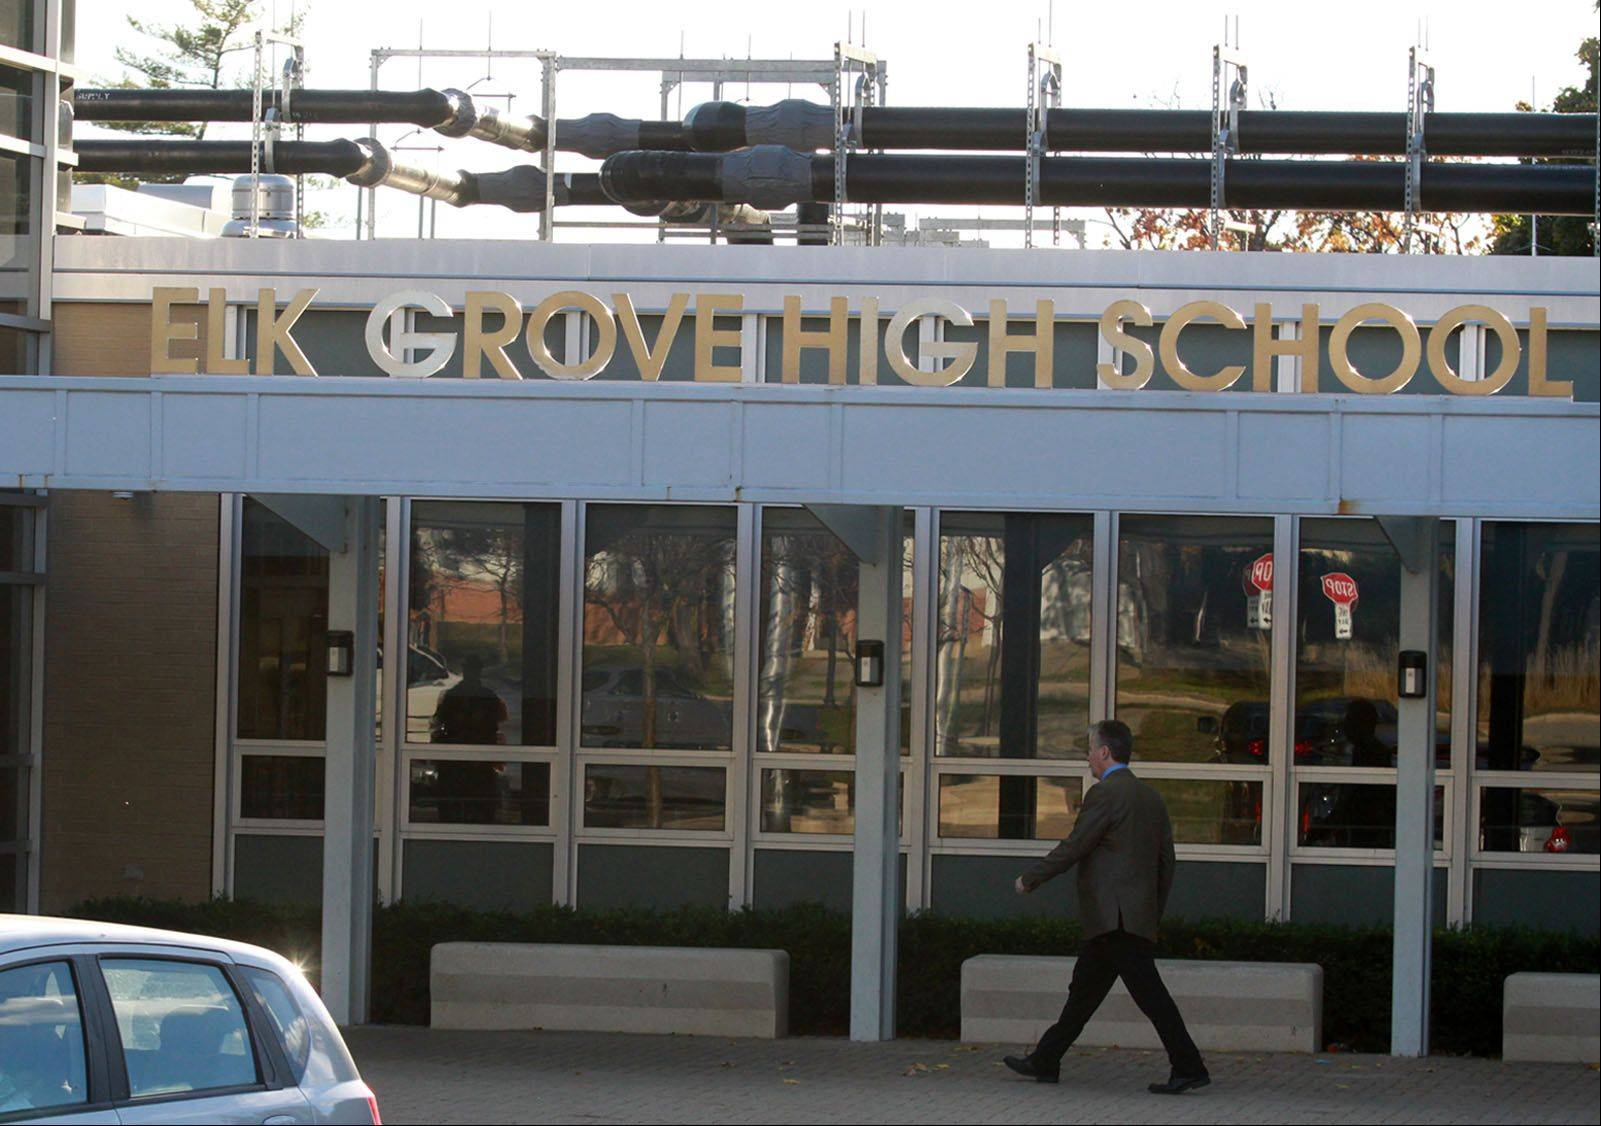 Ongoing sound abatement work, such as piping for a new air-conditioning system, will continue at Elk Grove High School next year as part of a $24 million facility improvement plan for Northwest Suburban High School District 214 schools. The plan also includes pool reconstruction at Buffalo Grove High School.